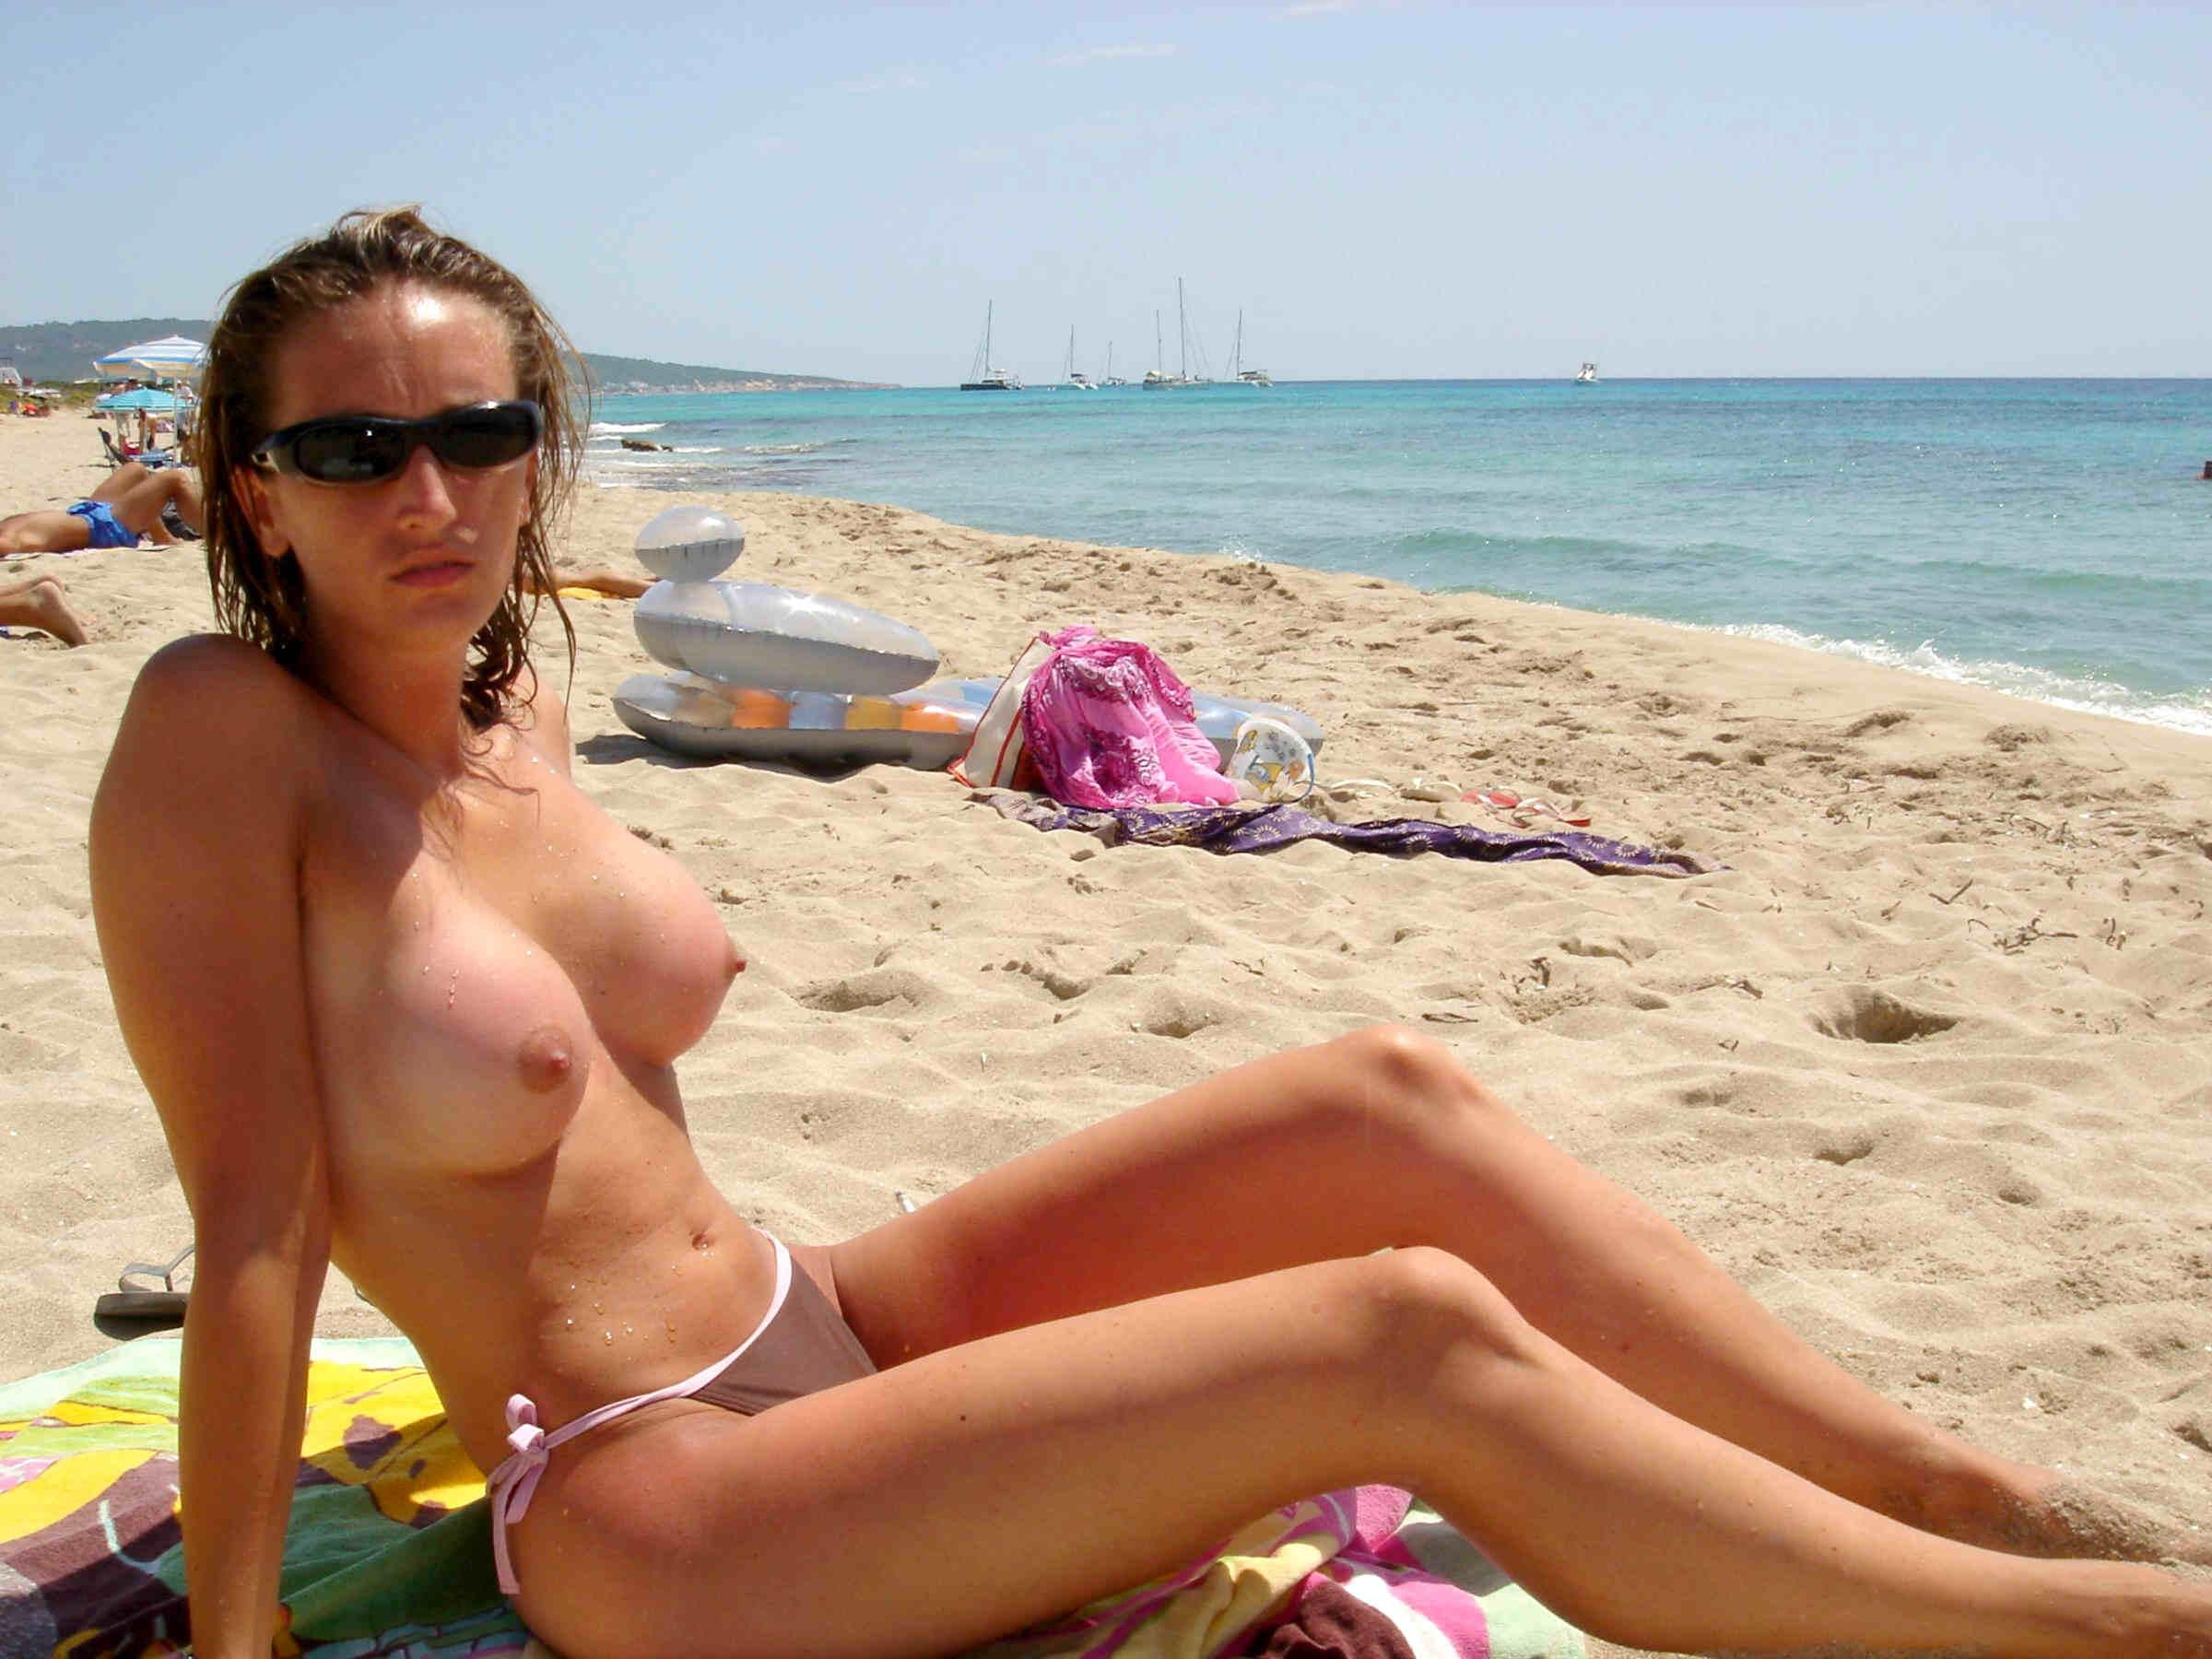 Hot topless chick on the sunny beach